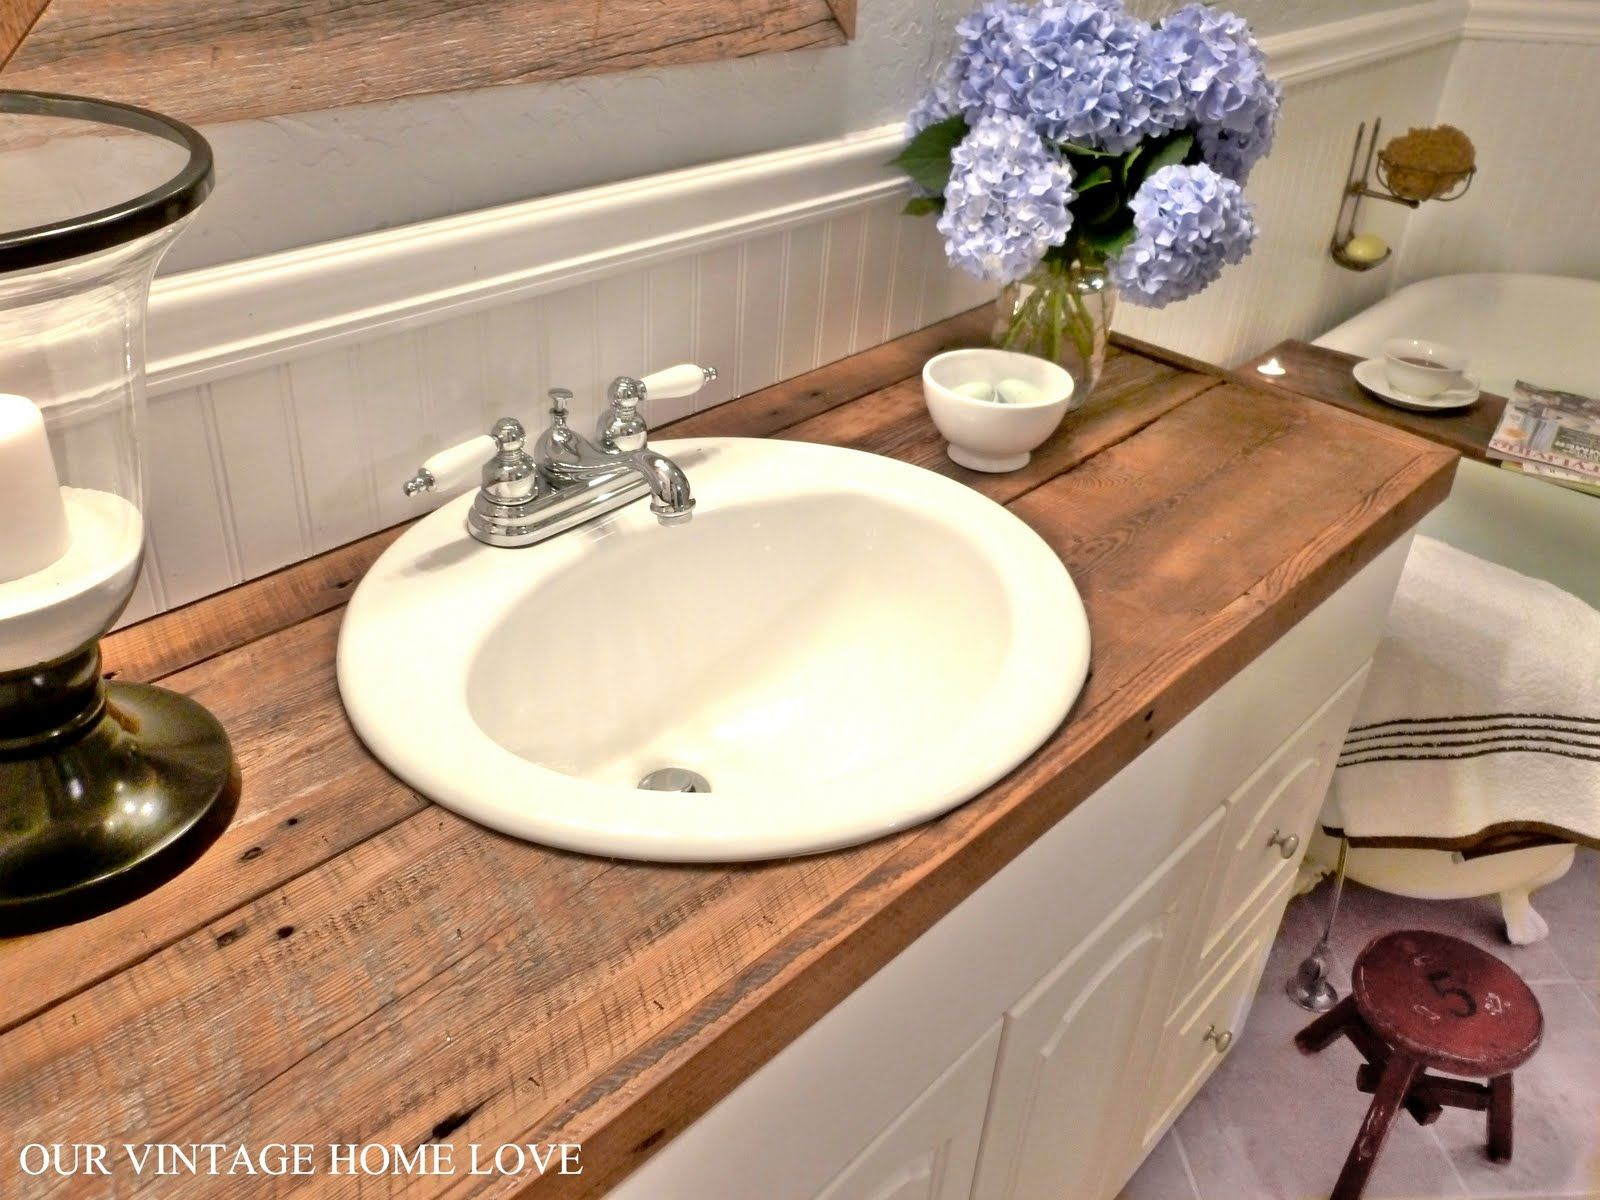 Hate Your Countertops DIY Salvaged Wood Countercheap And So - Salvage bathroom vanity cabinets for bathroom decor ideas